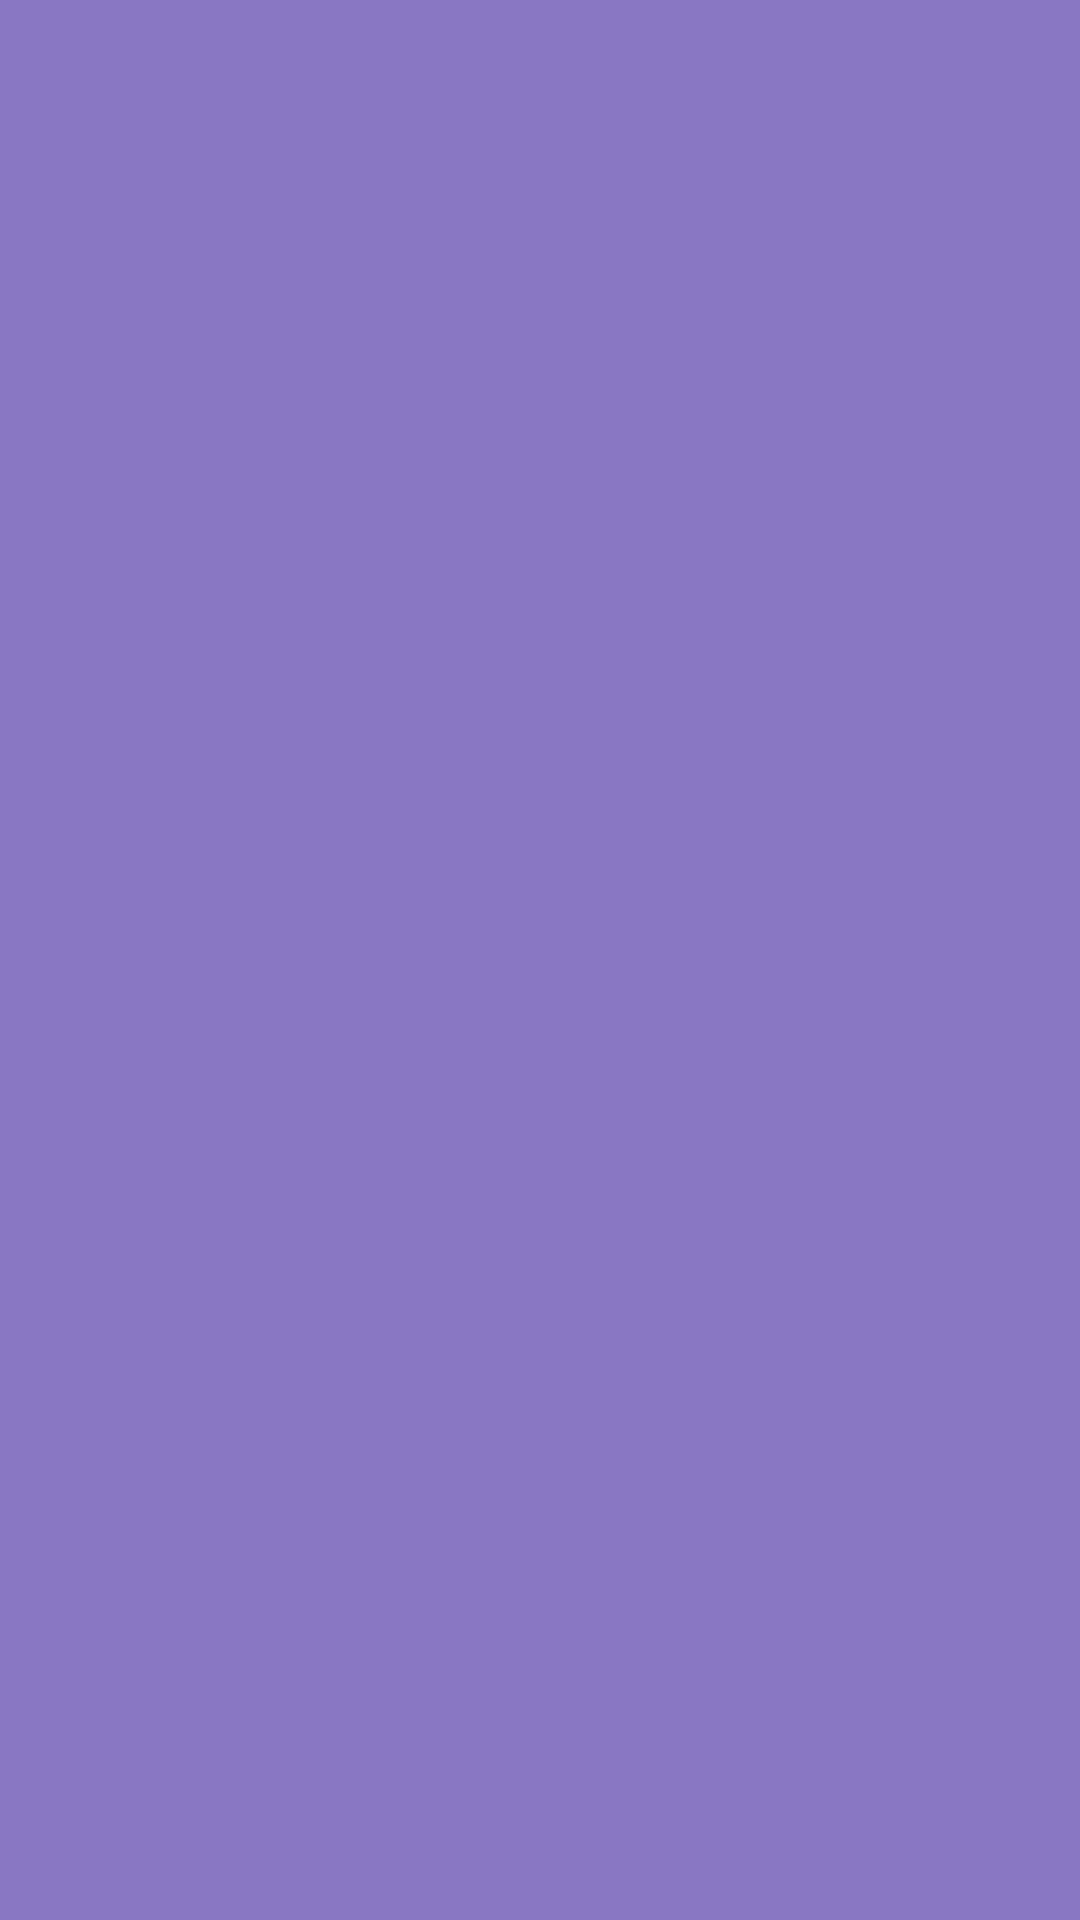 1080x1920 Ube Solid Color Background